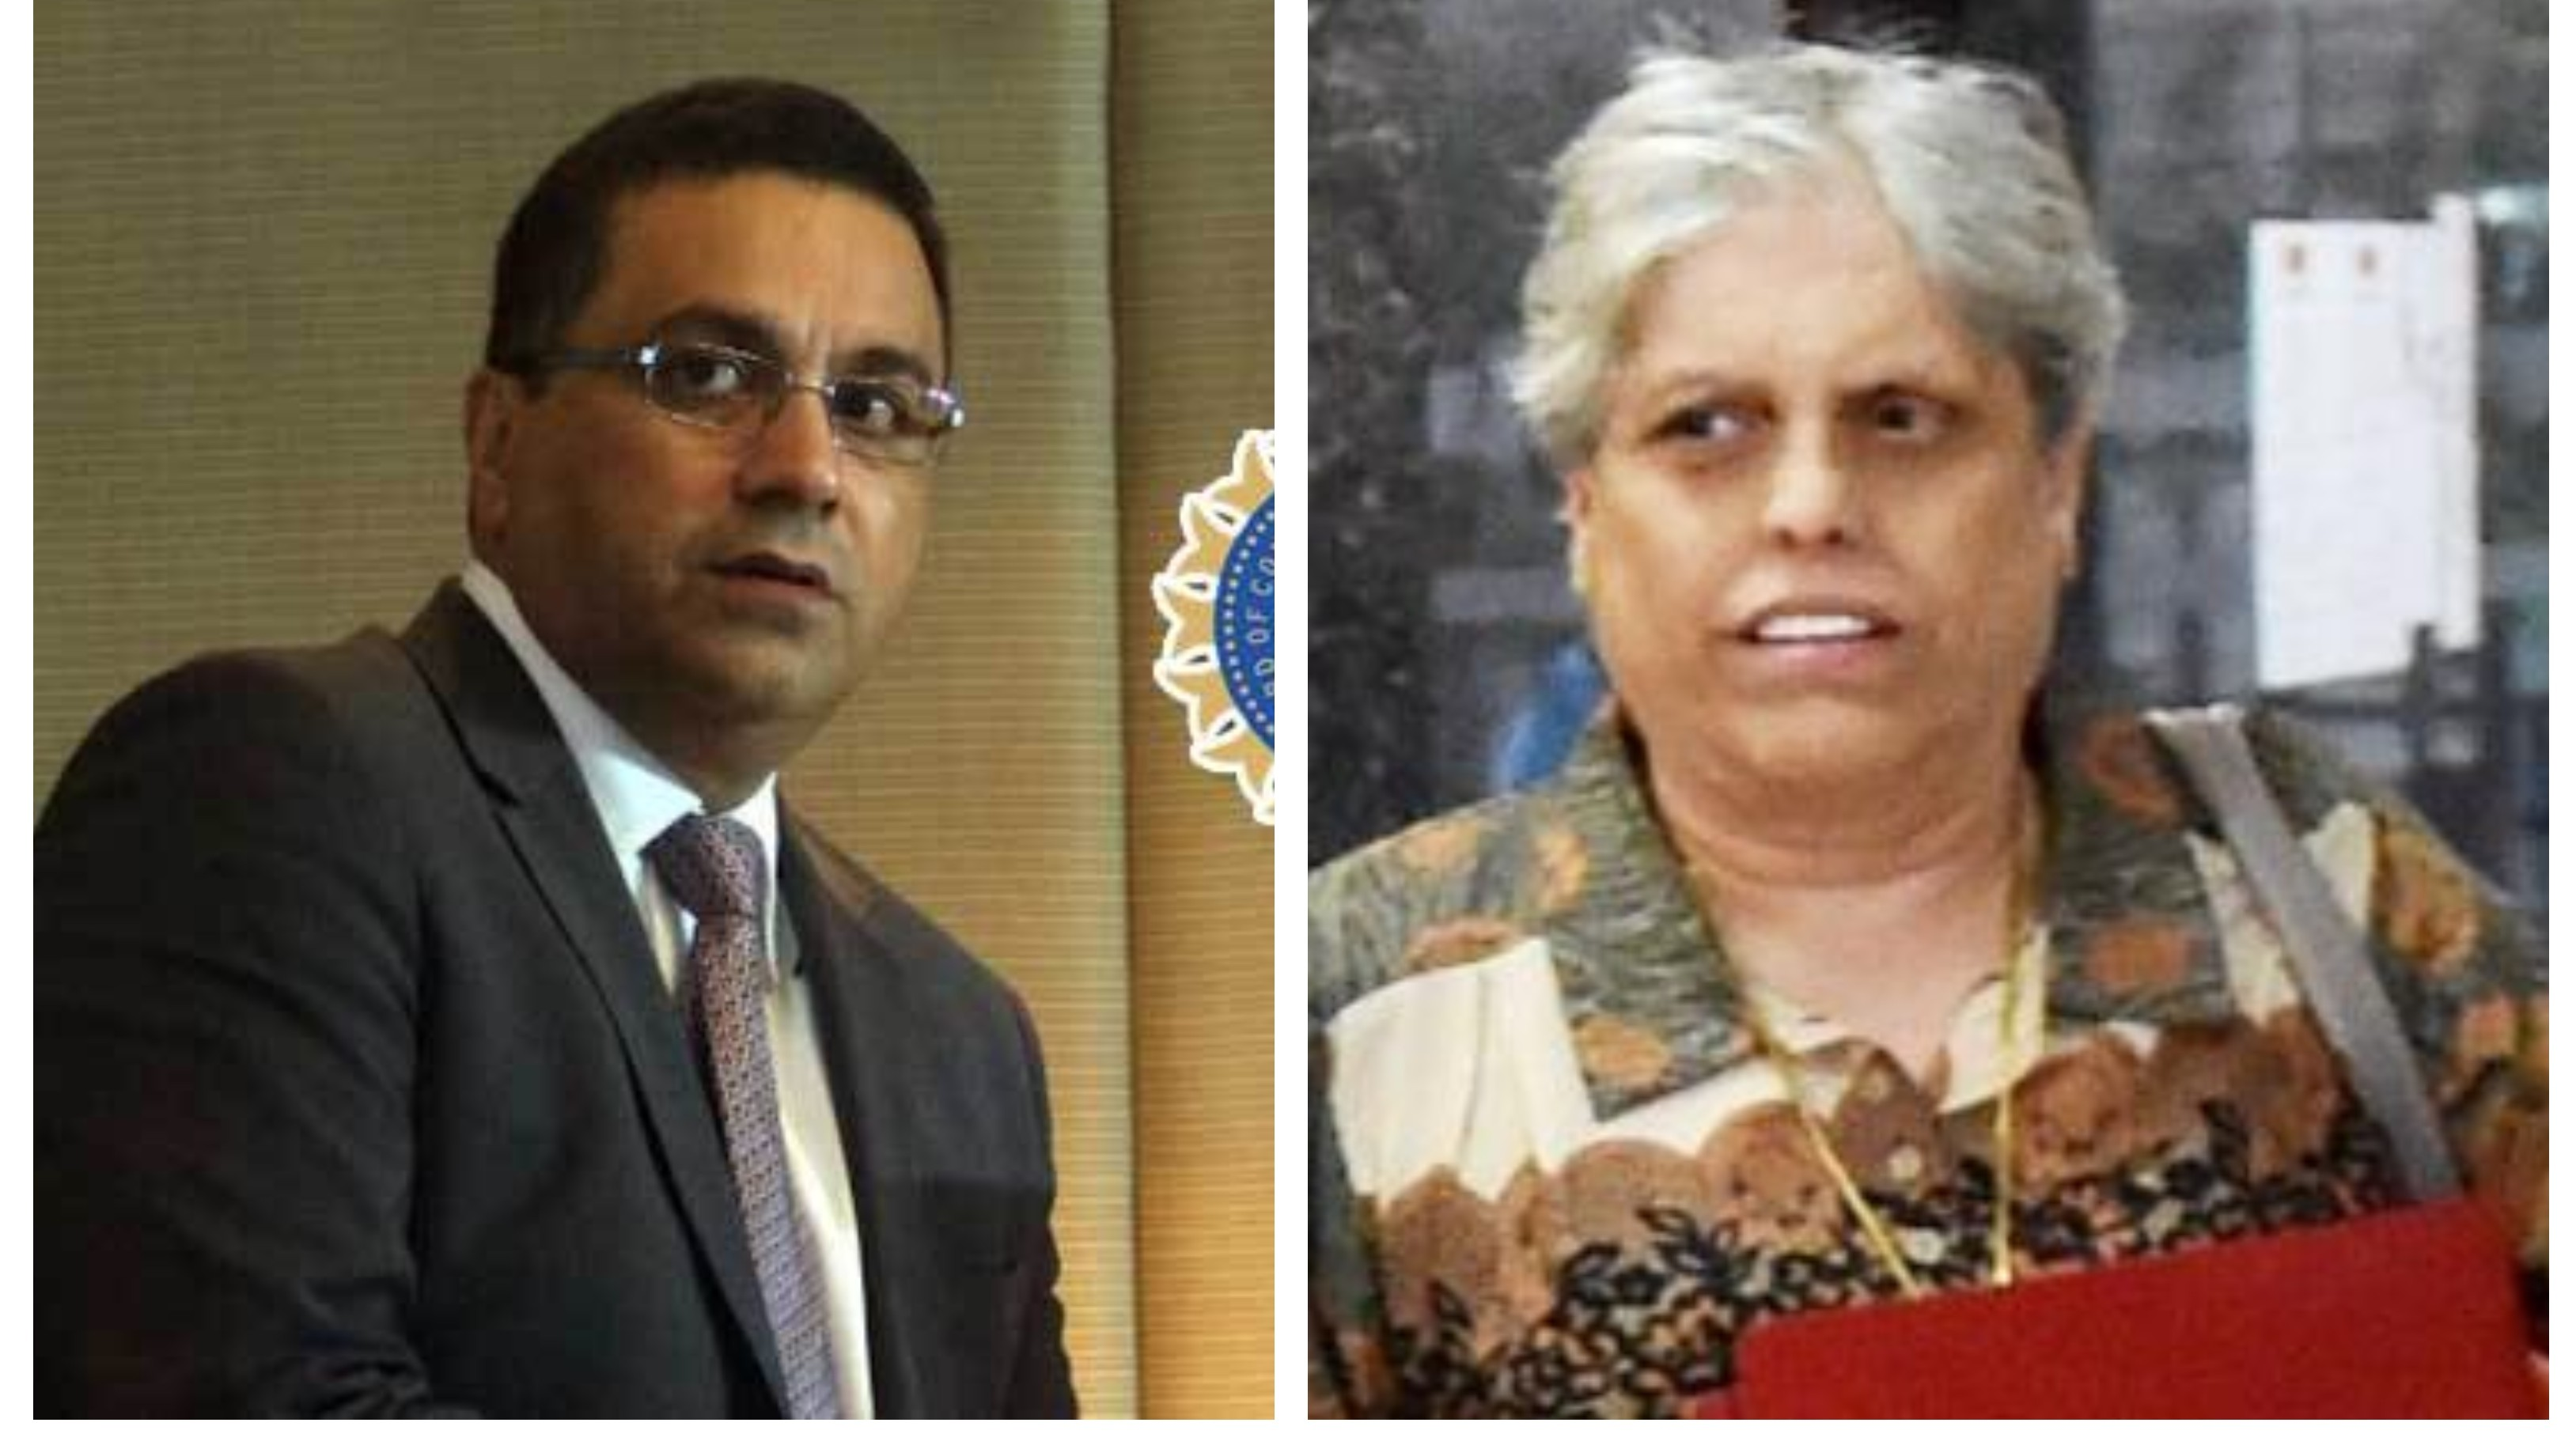 Diana Edulji reiterates stance on Rahul Johri, says COA was wrong in retaining him as BCCI CEO